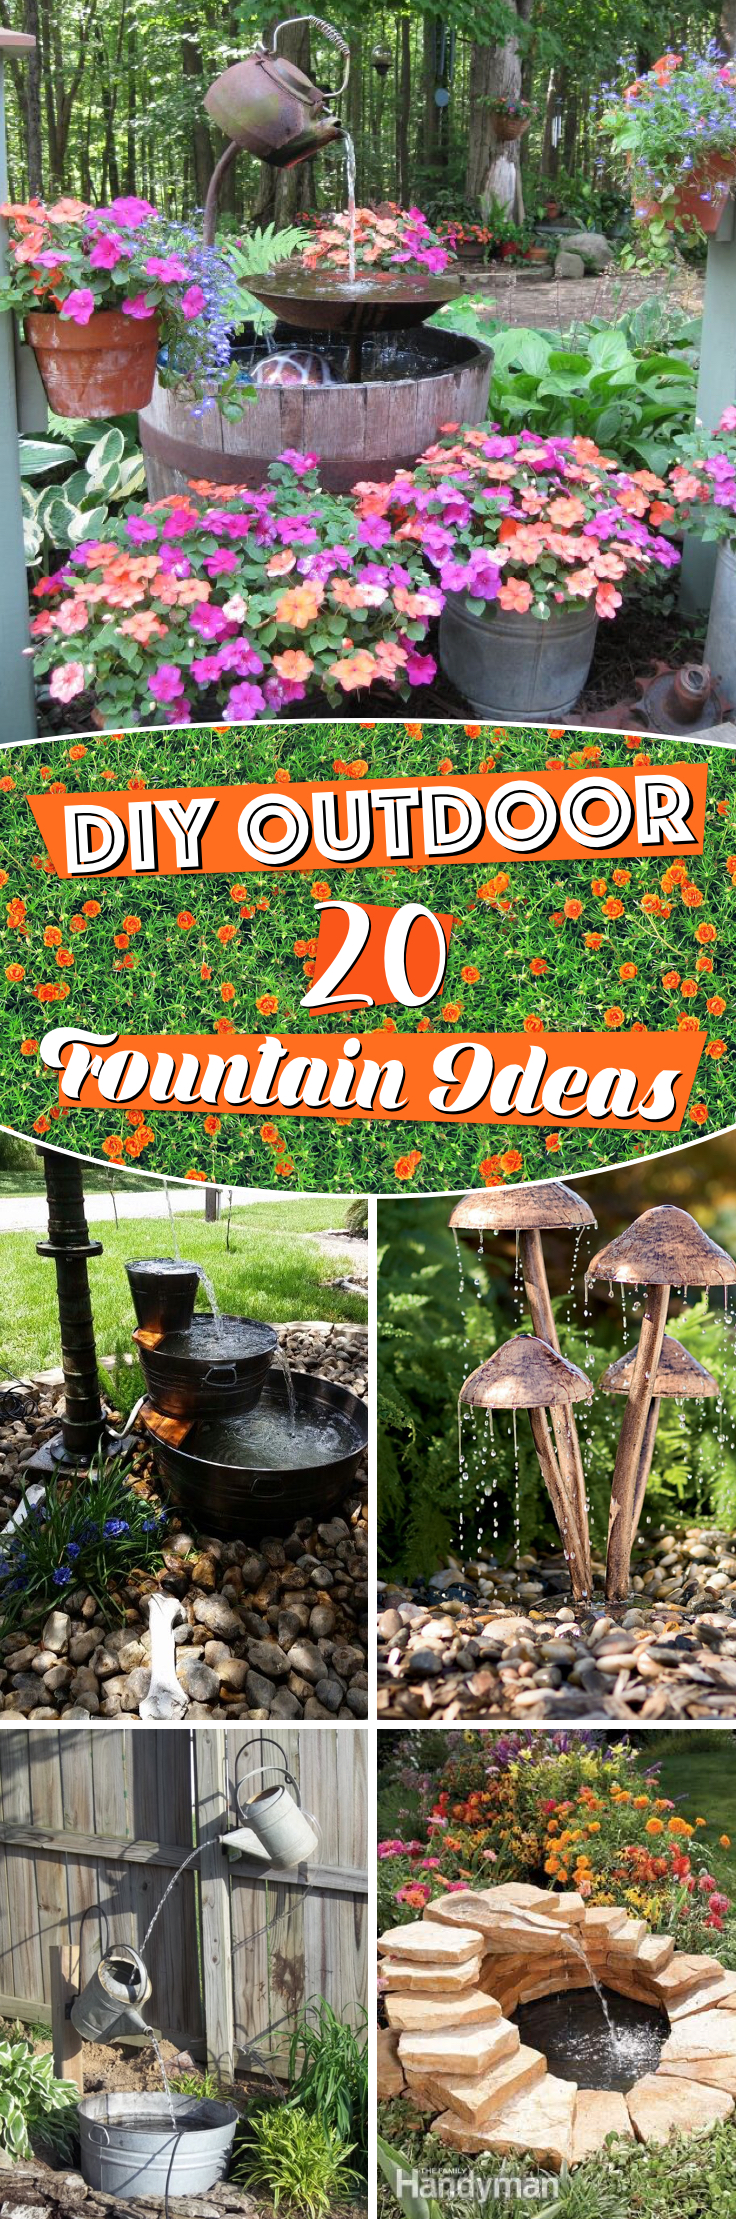 20 Diy Outdoor Fountain Ideas Brightening Up Your Home With